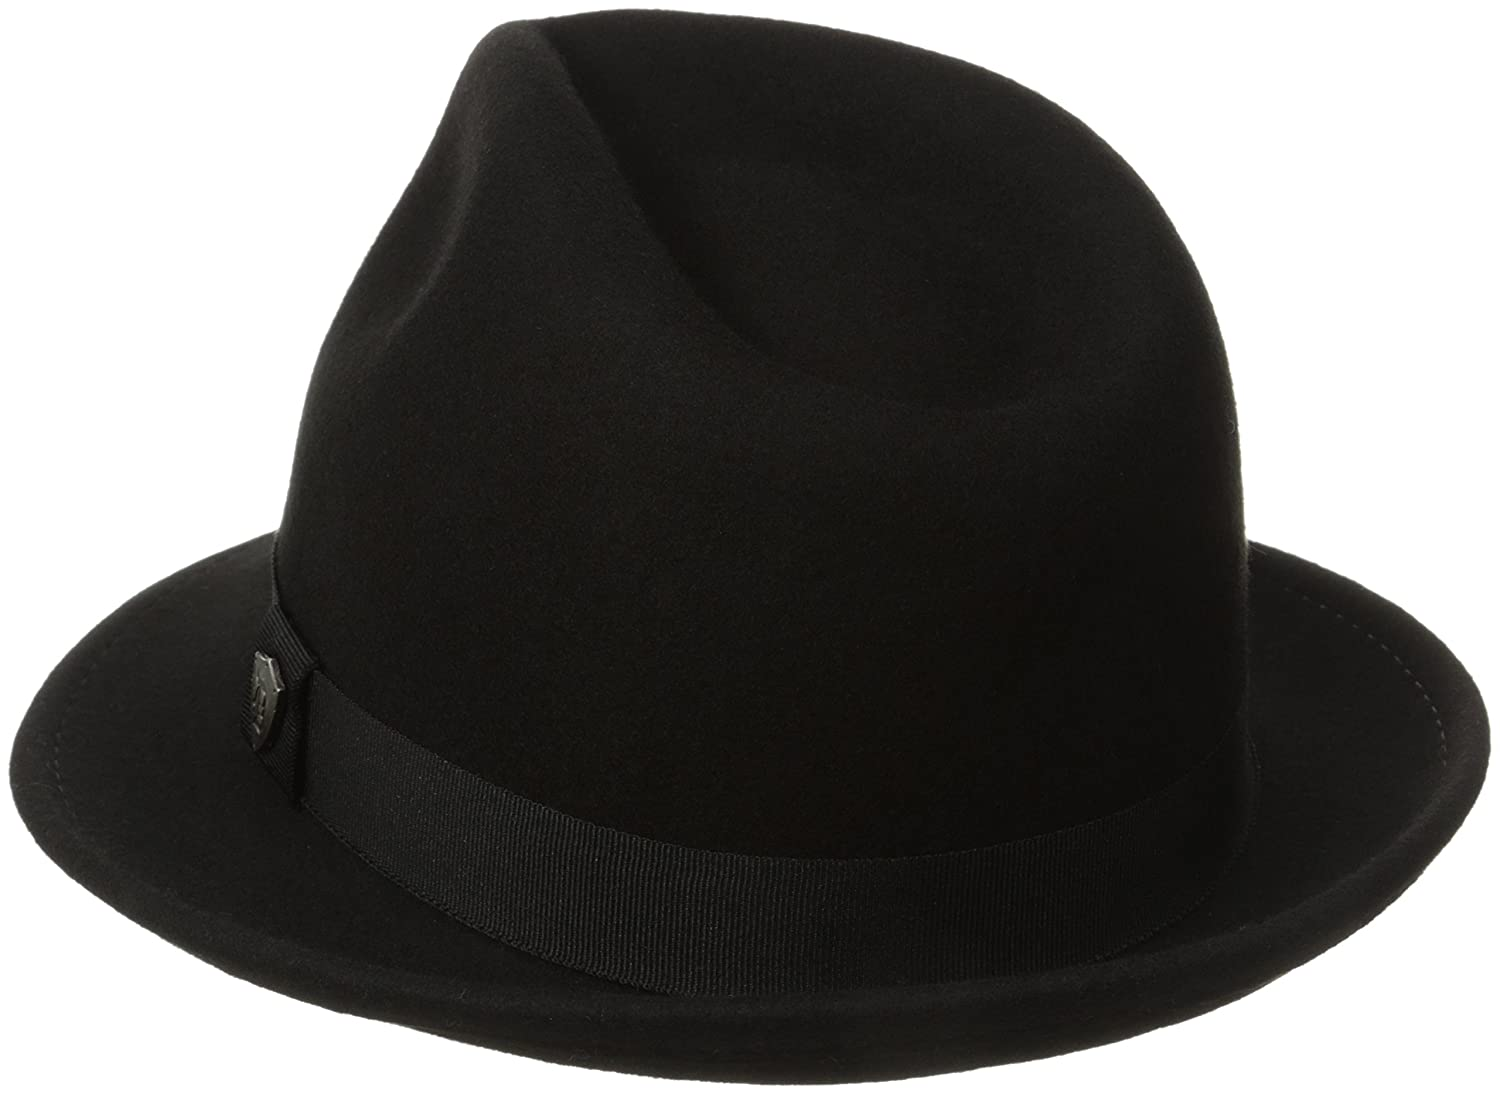 1920s Mens Hats & Caps | Gatsby, Peaky Blinders, Gangster Dorfman Wool Felt Hat $44.95 AT vintagedancer.com